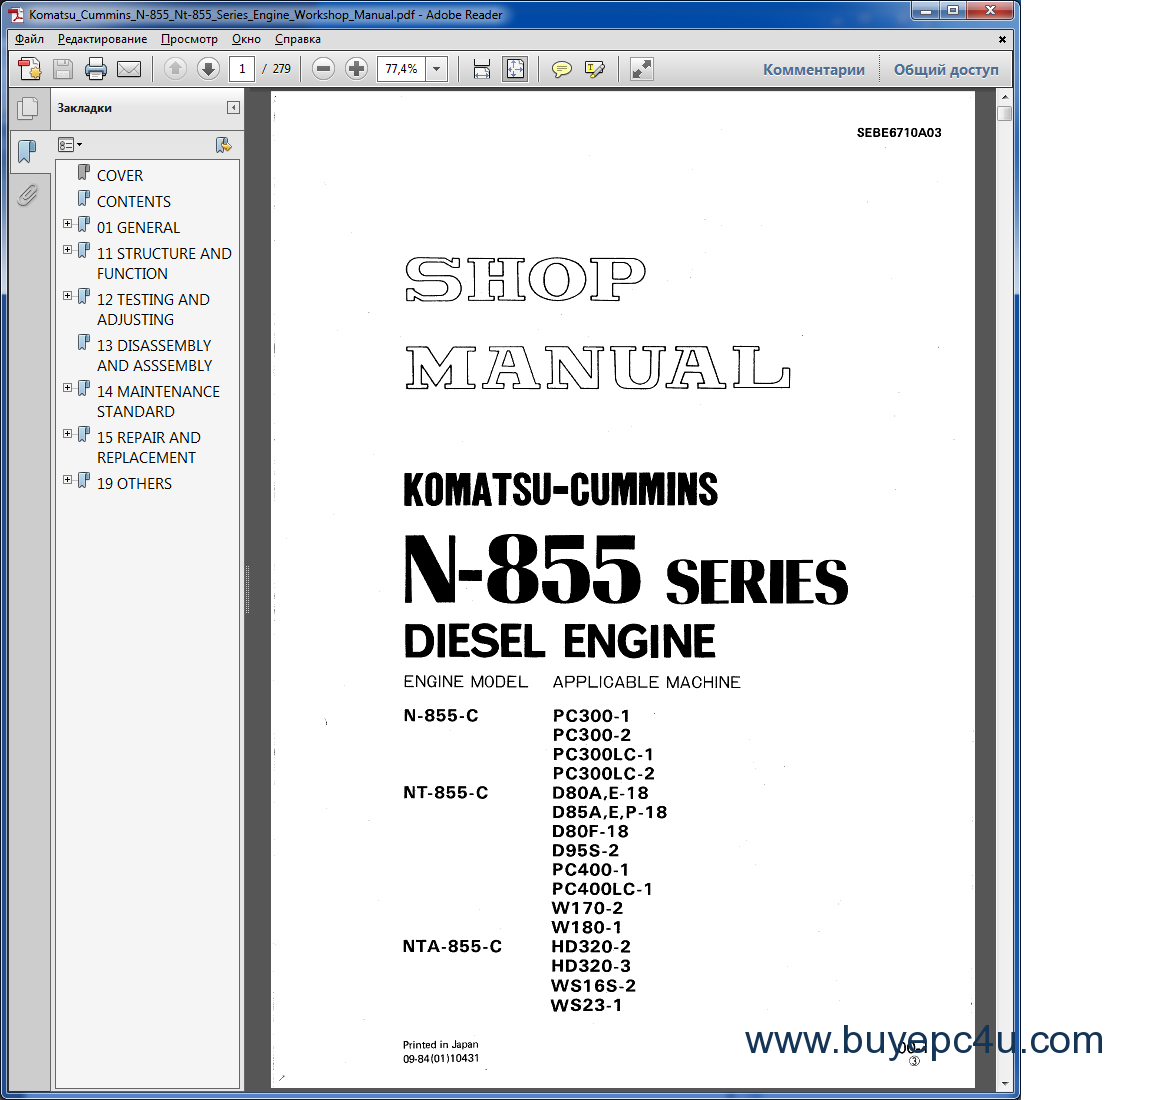 cummins komatsu n 855 nt 855 series engine service manual rh buyepc4u com NT855 Cummins Diesel Engine Big Cam Cummins Engine NT855